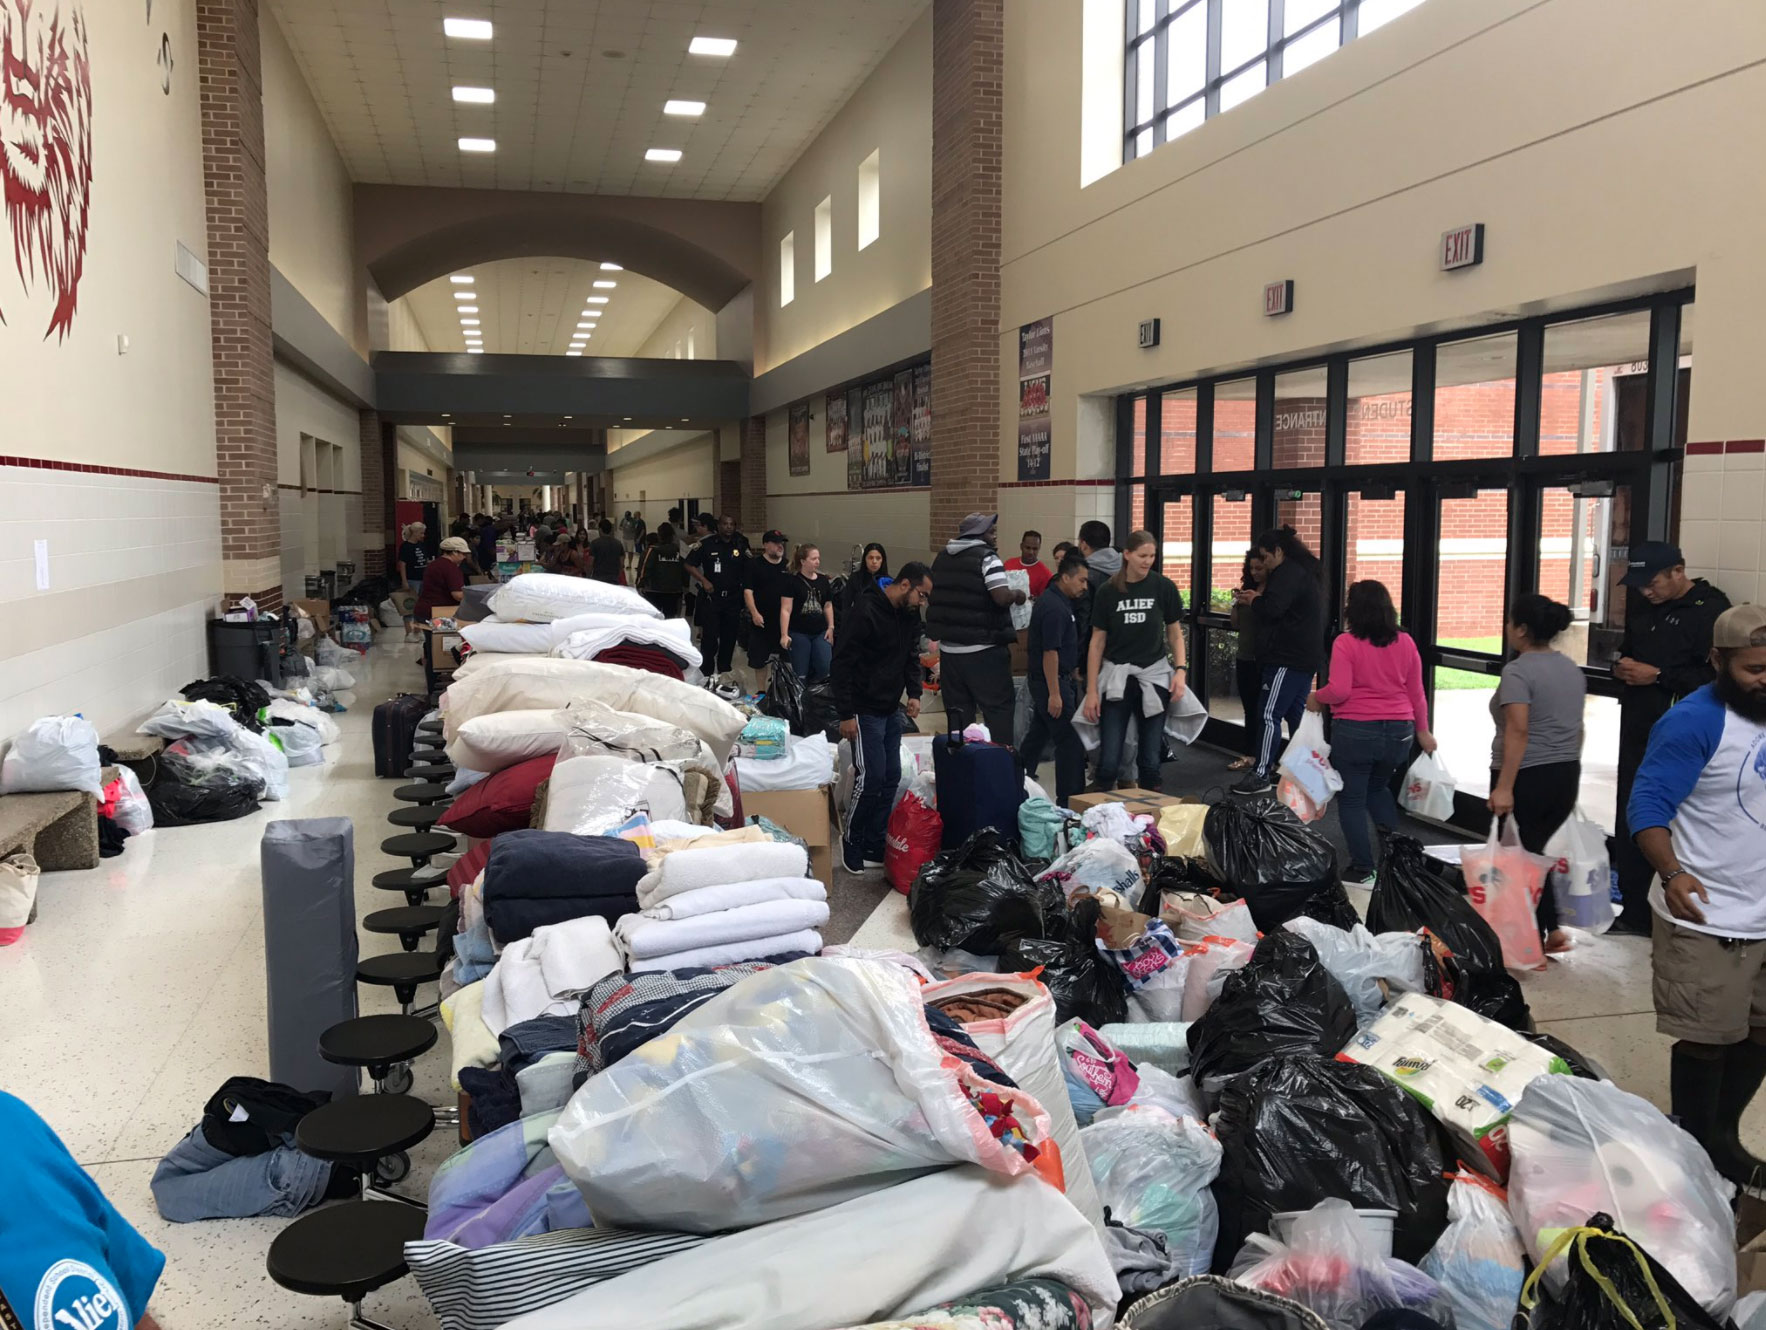 <div class='meta'><div class='origin-logo' data-origin='none'></div><span class='caption-text' data-credit='AliefISD/Twitter'>People take shelter at Alief Taylor High School.</span></div>